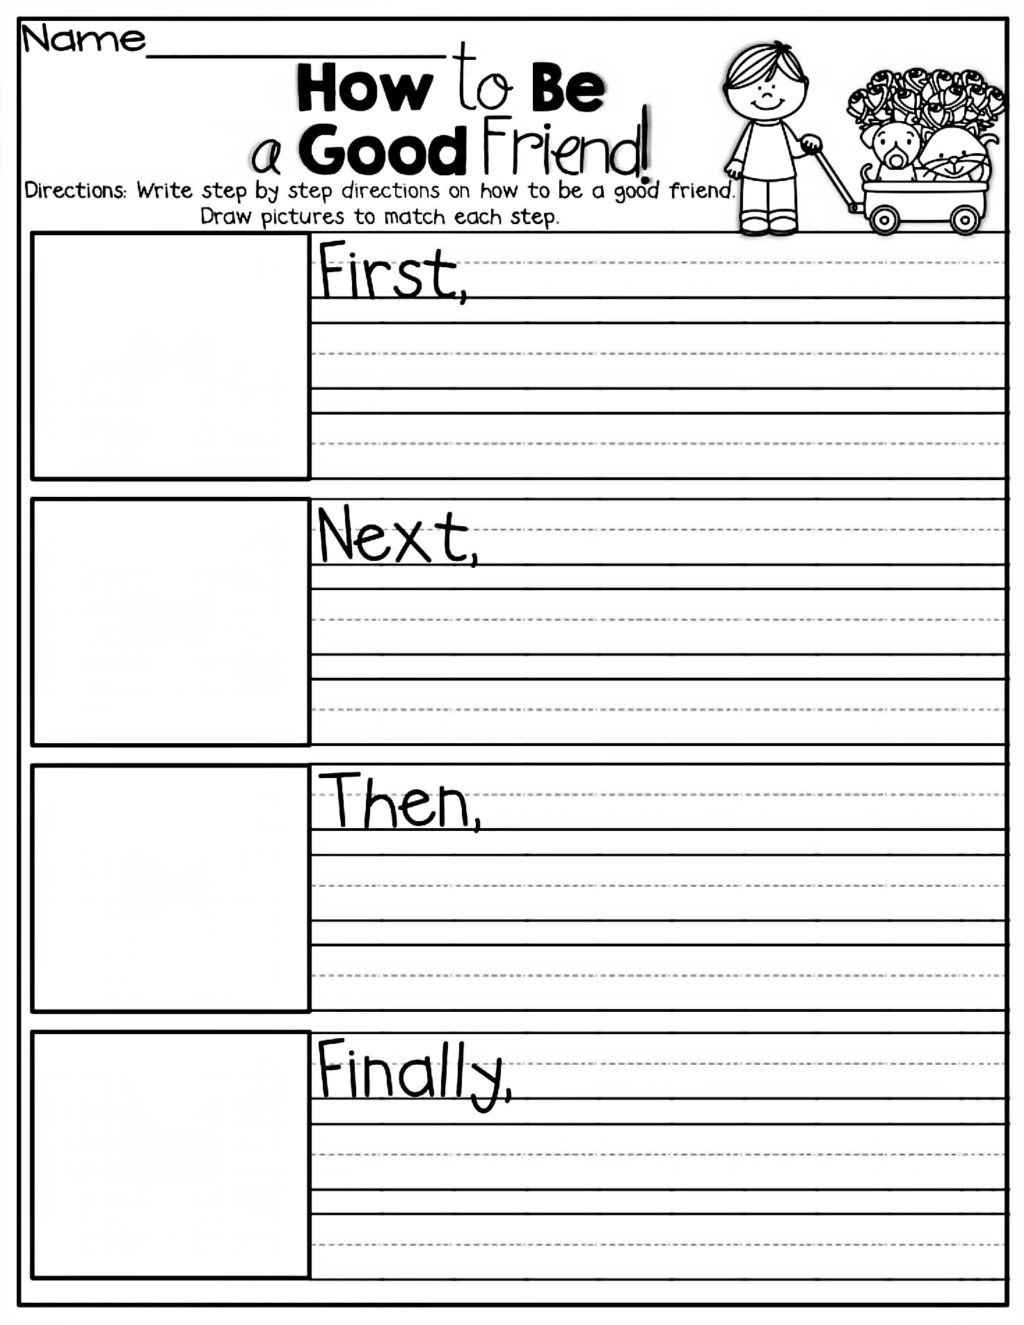 Impulse Control Worksheets For Kids Template Library